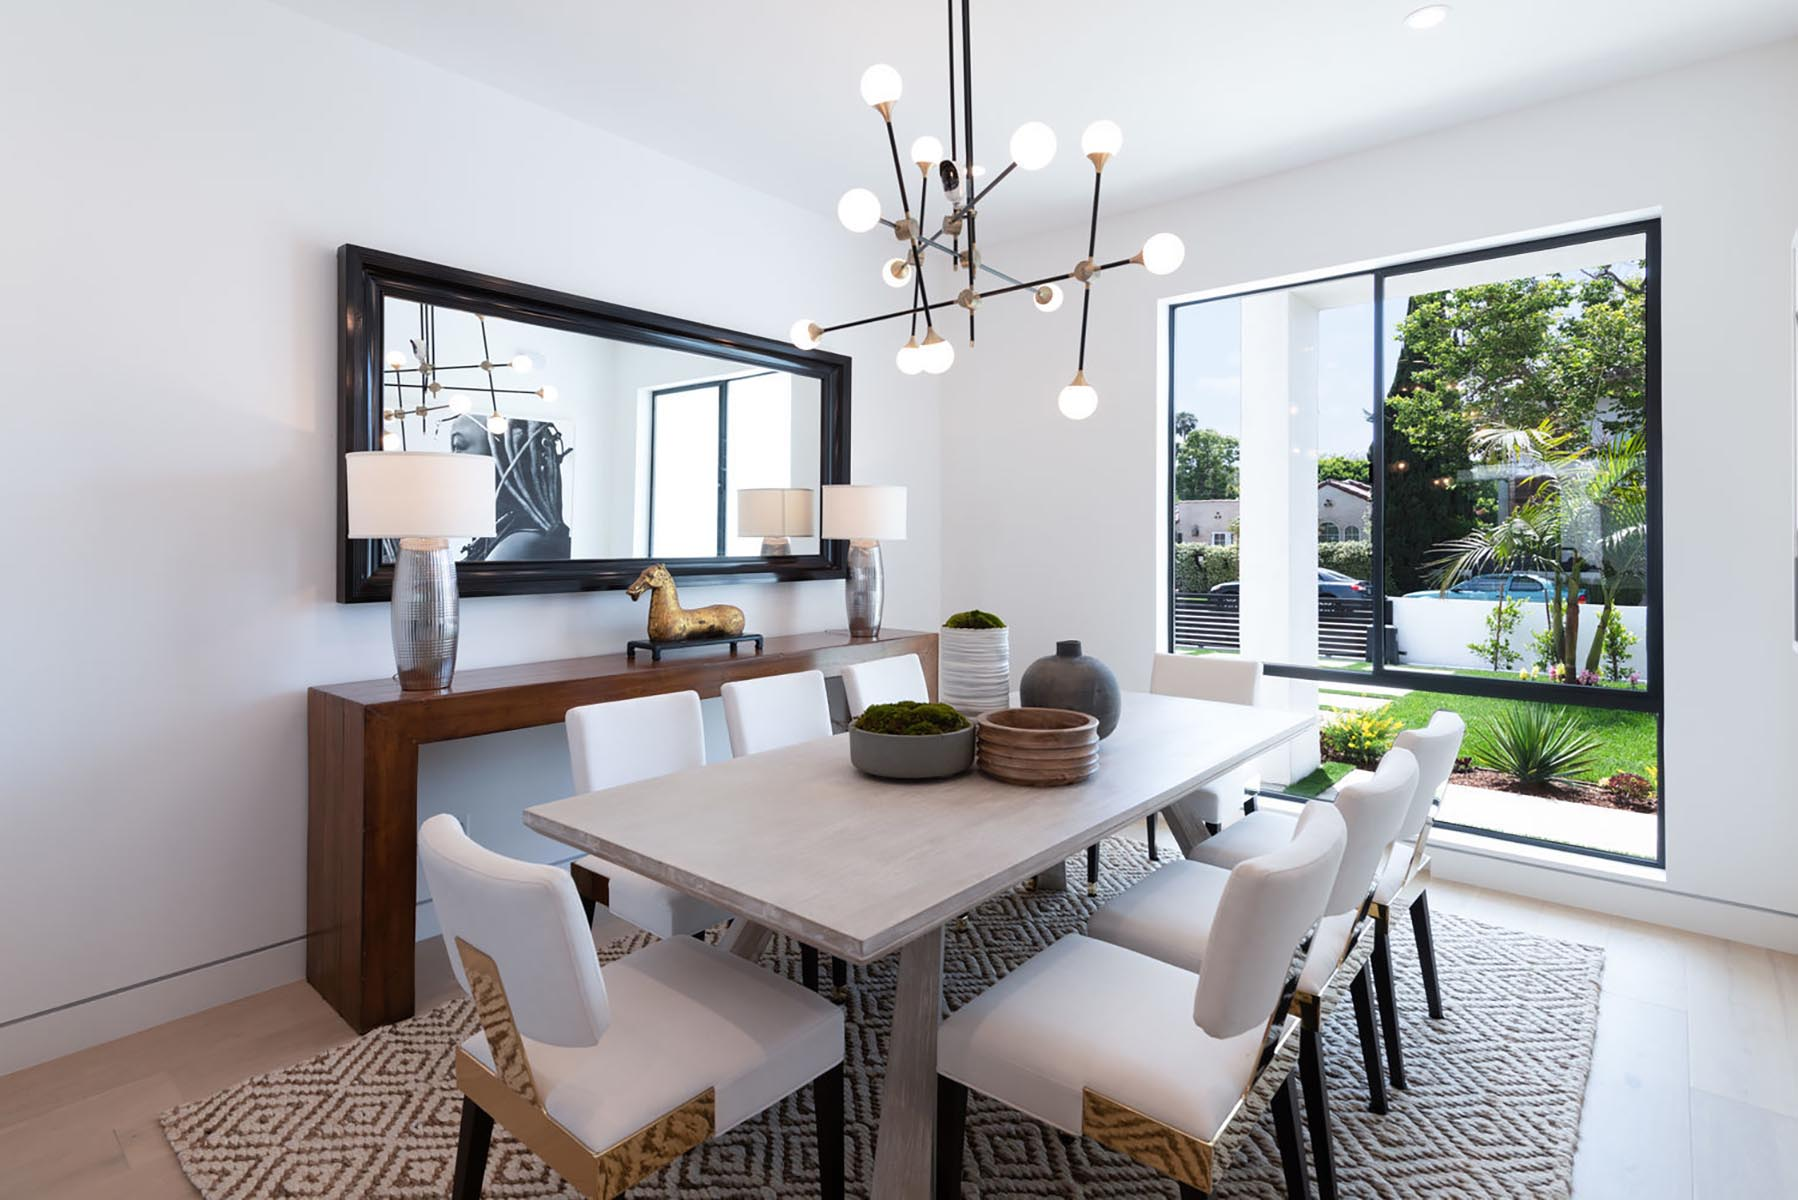 Home design Los Angeles modern contemporary dining area 2